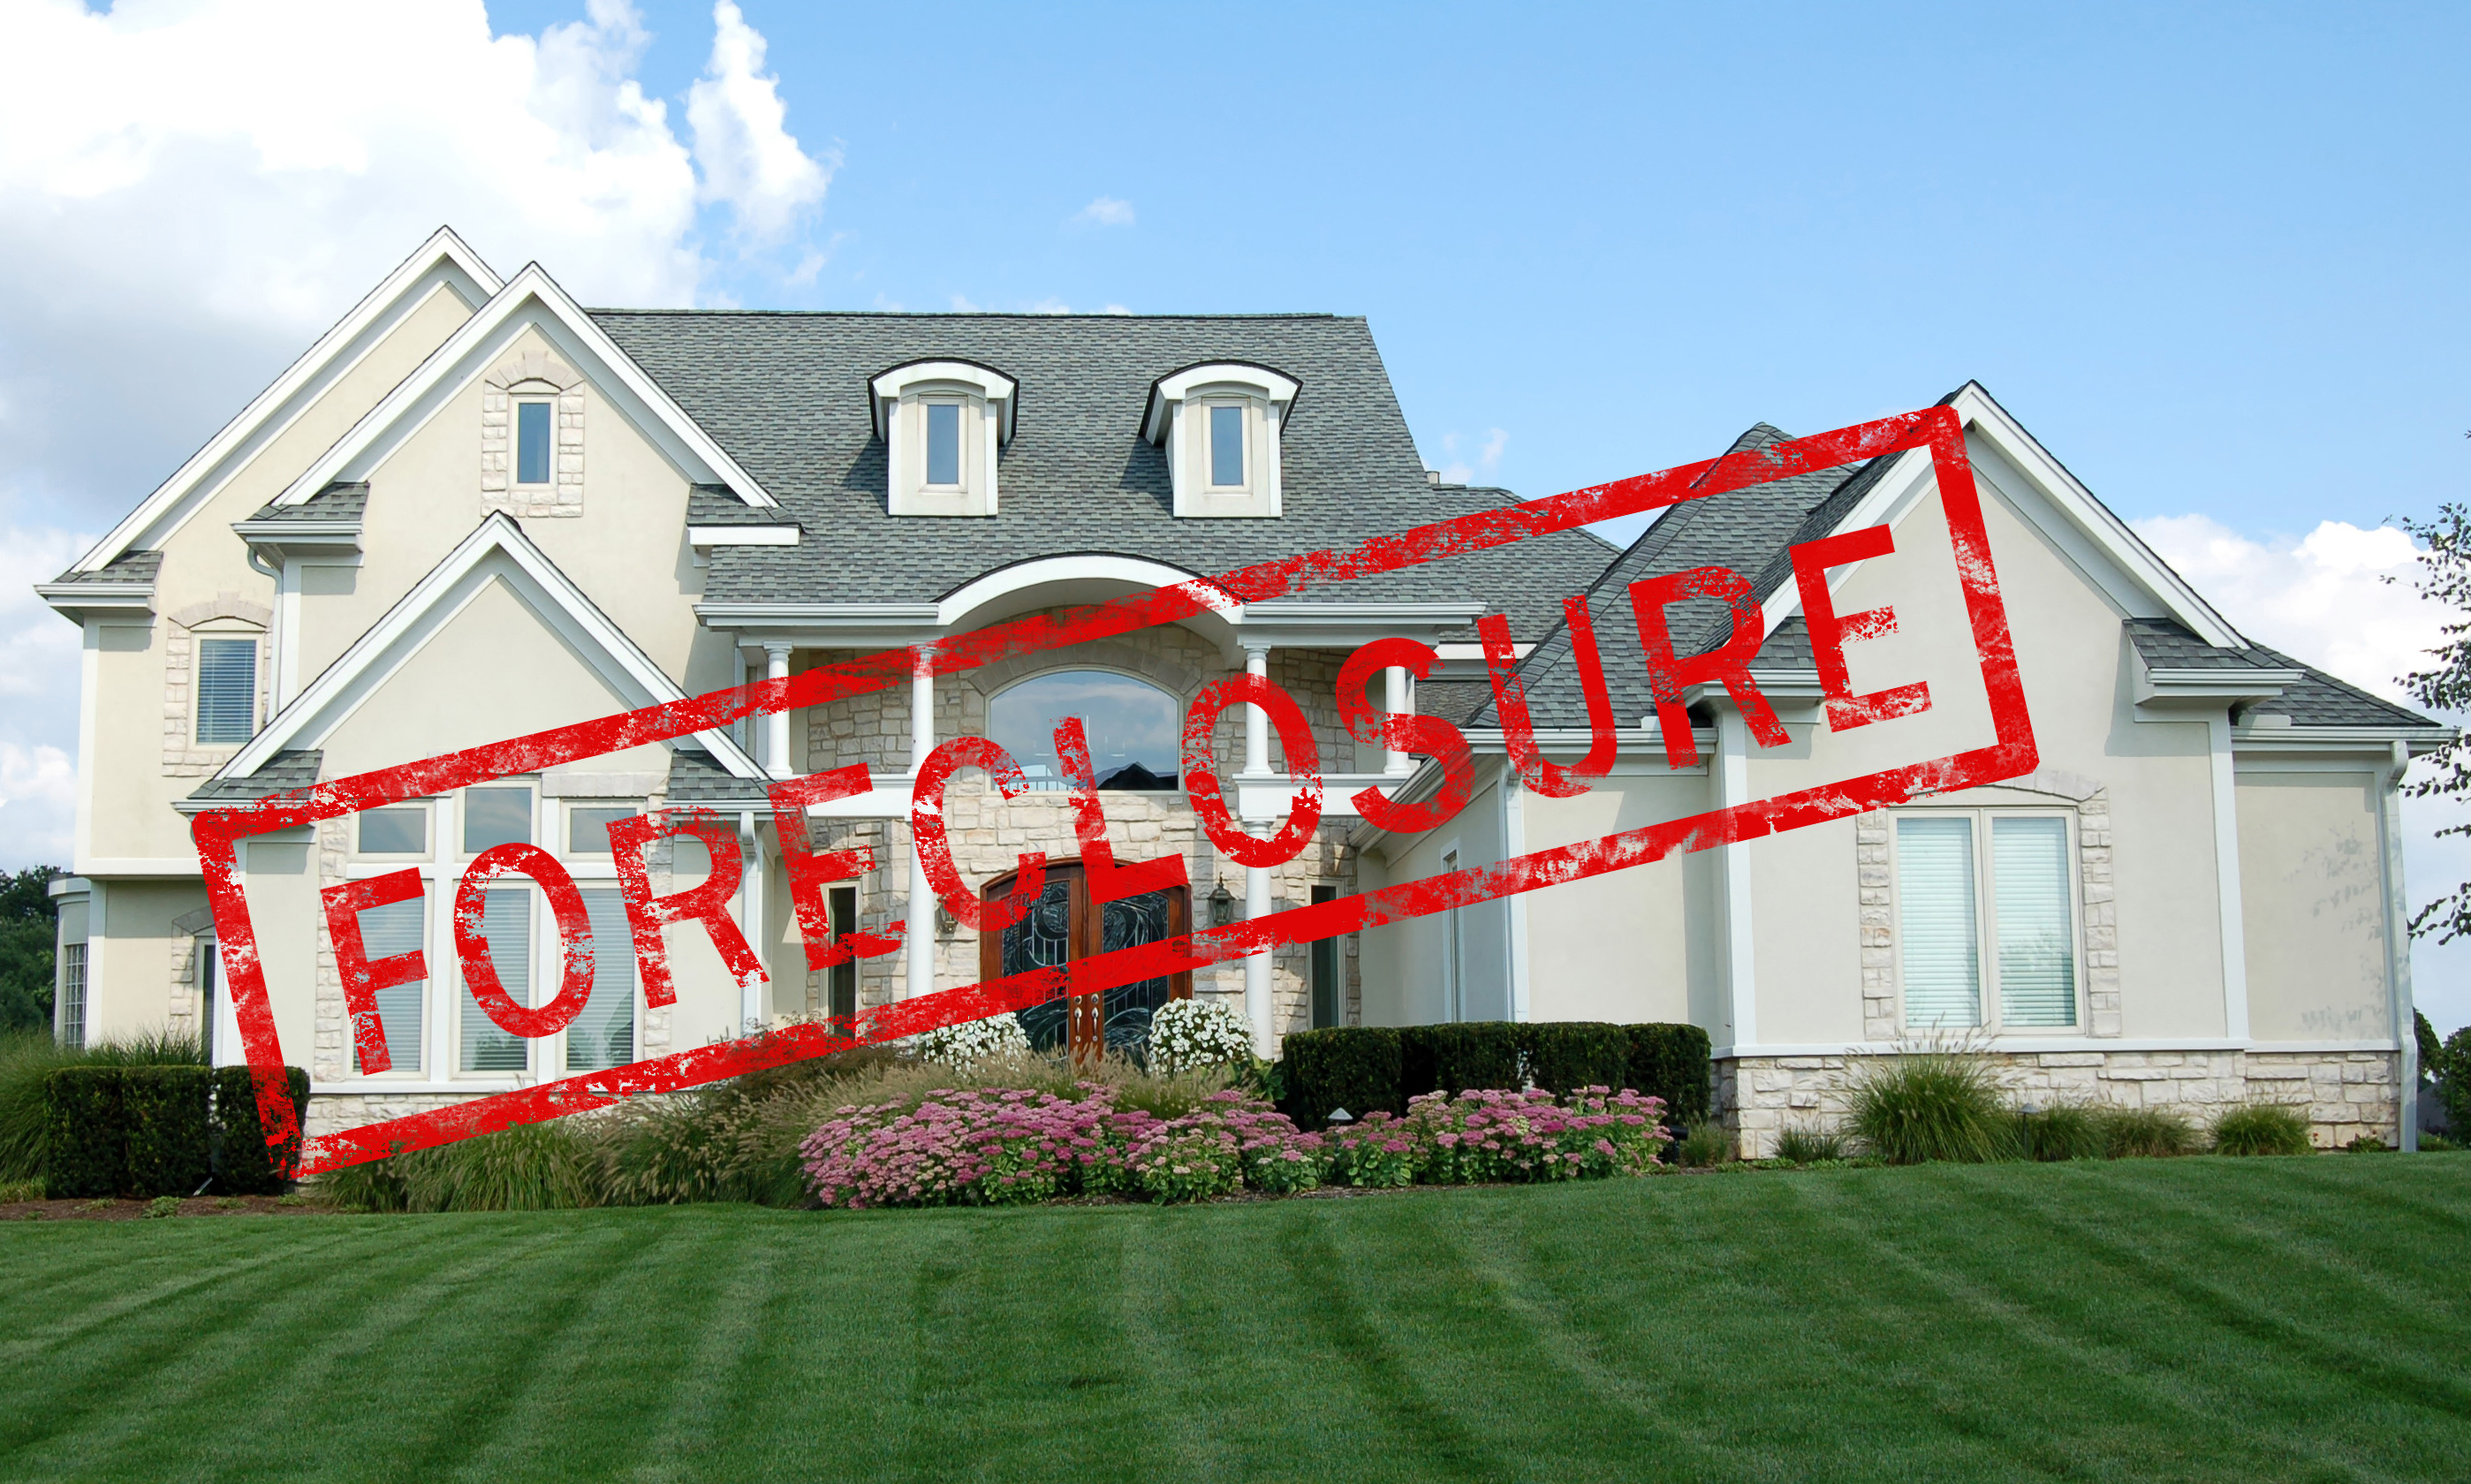 Call Frederick & Company when you need valuations regarding Allegheny foreclosures